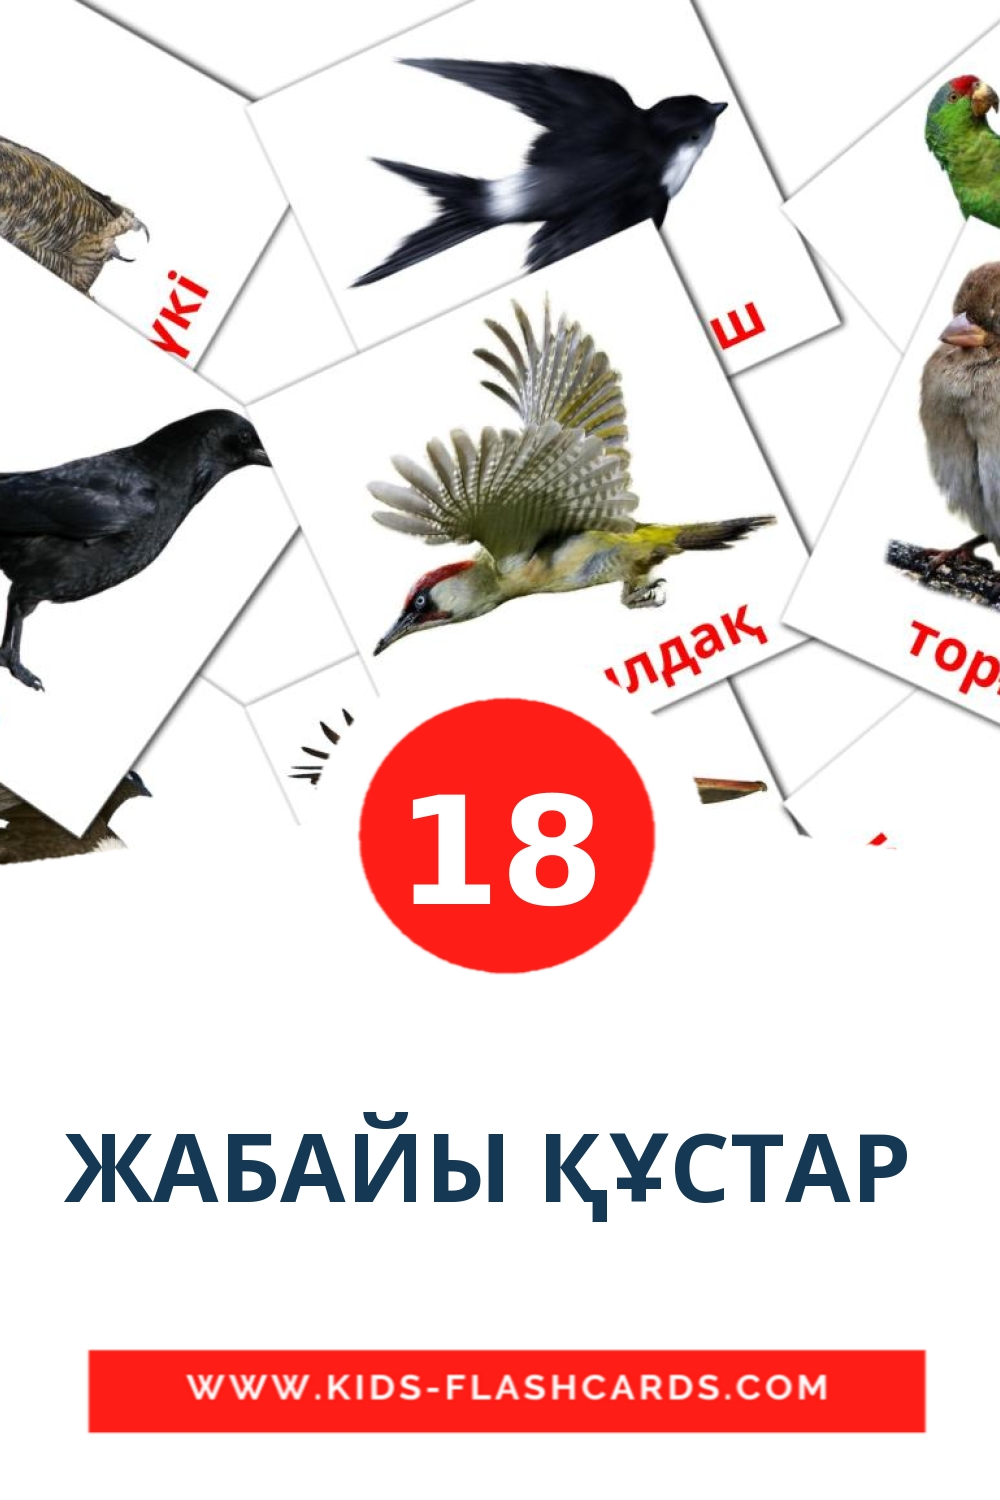 17 ЖАБАЙЫ ҚҰСТАР  Picture Cards for Kindergarden in kazakh